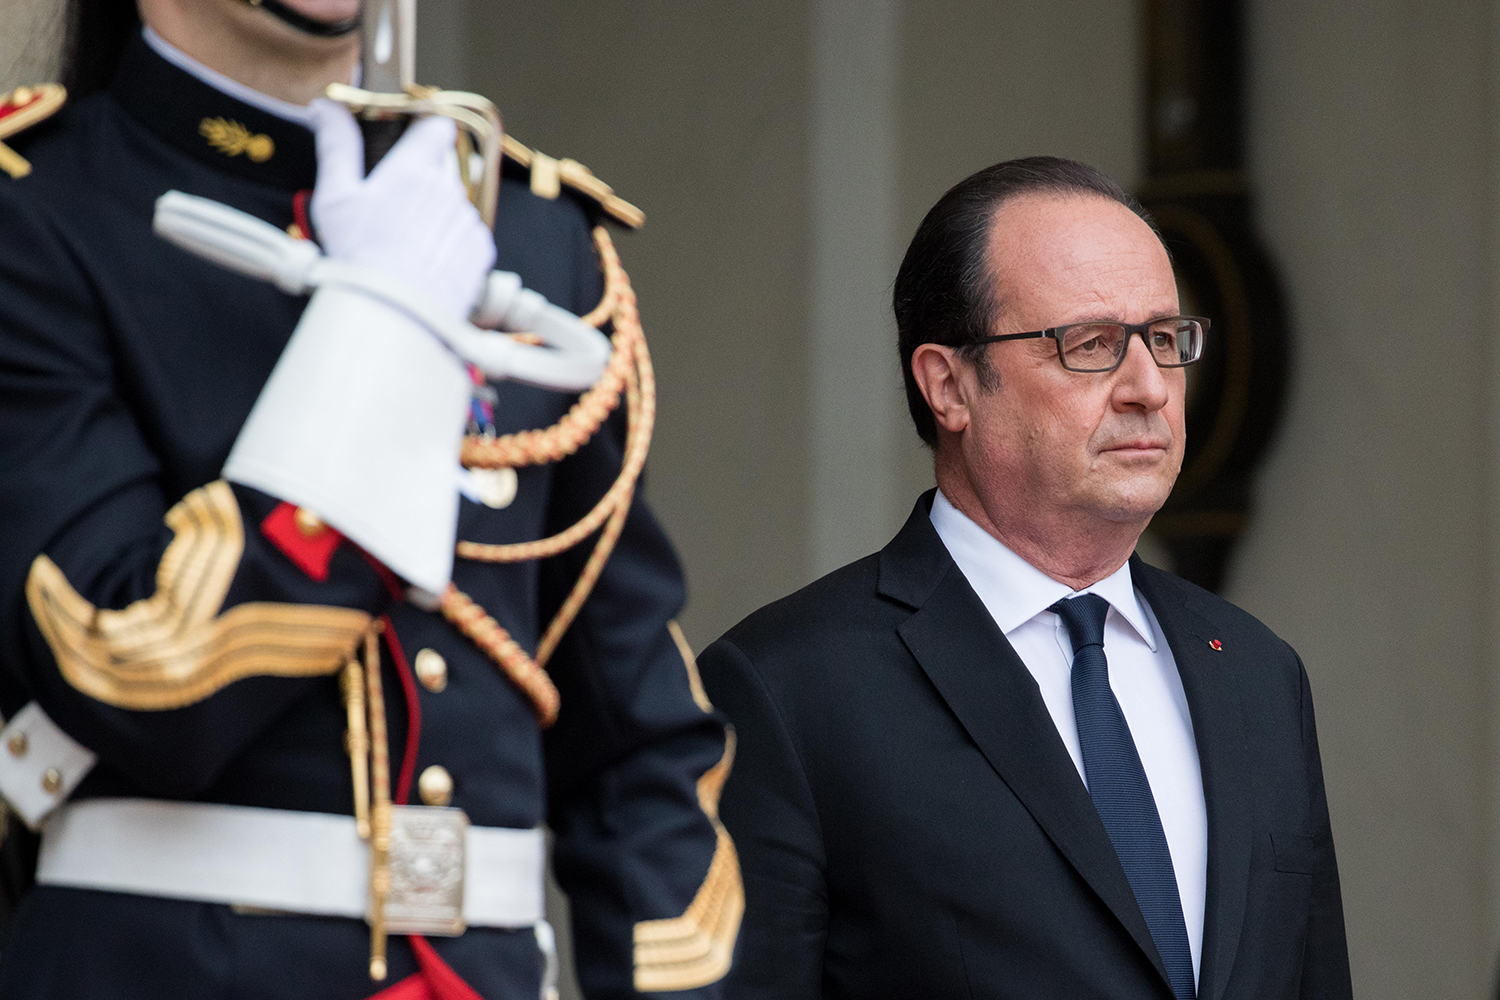 Former French President François Hollande awaits the arrival of the then French President-elect Emmanuel Macron during the transfer of power in Paris on May 14, 2017.